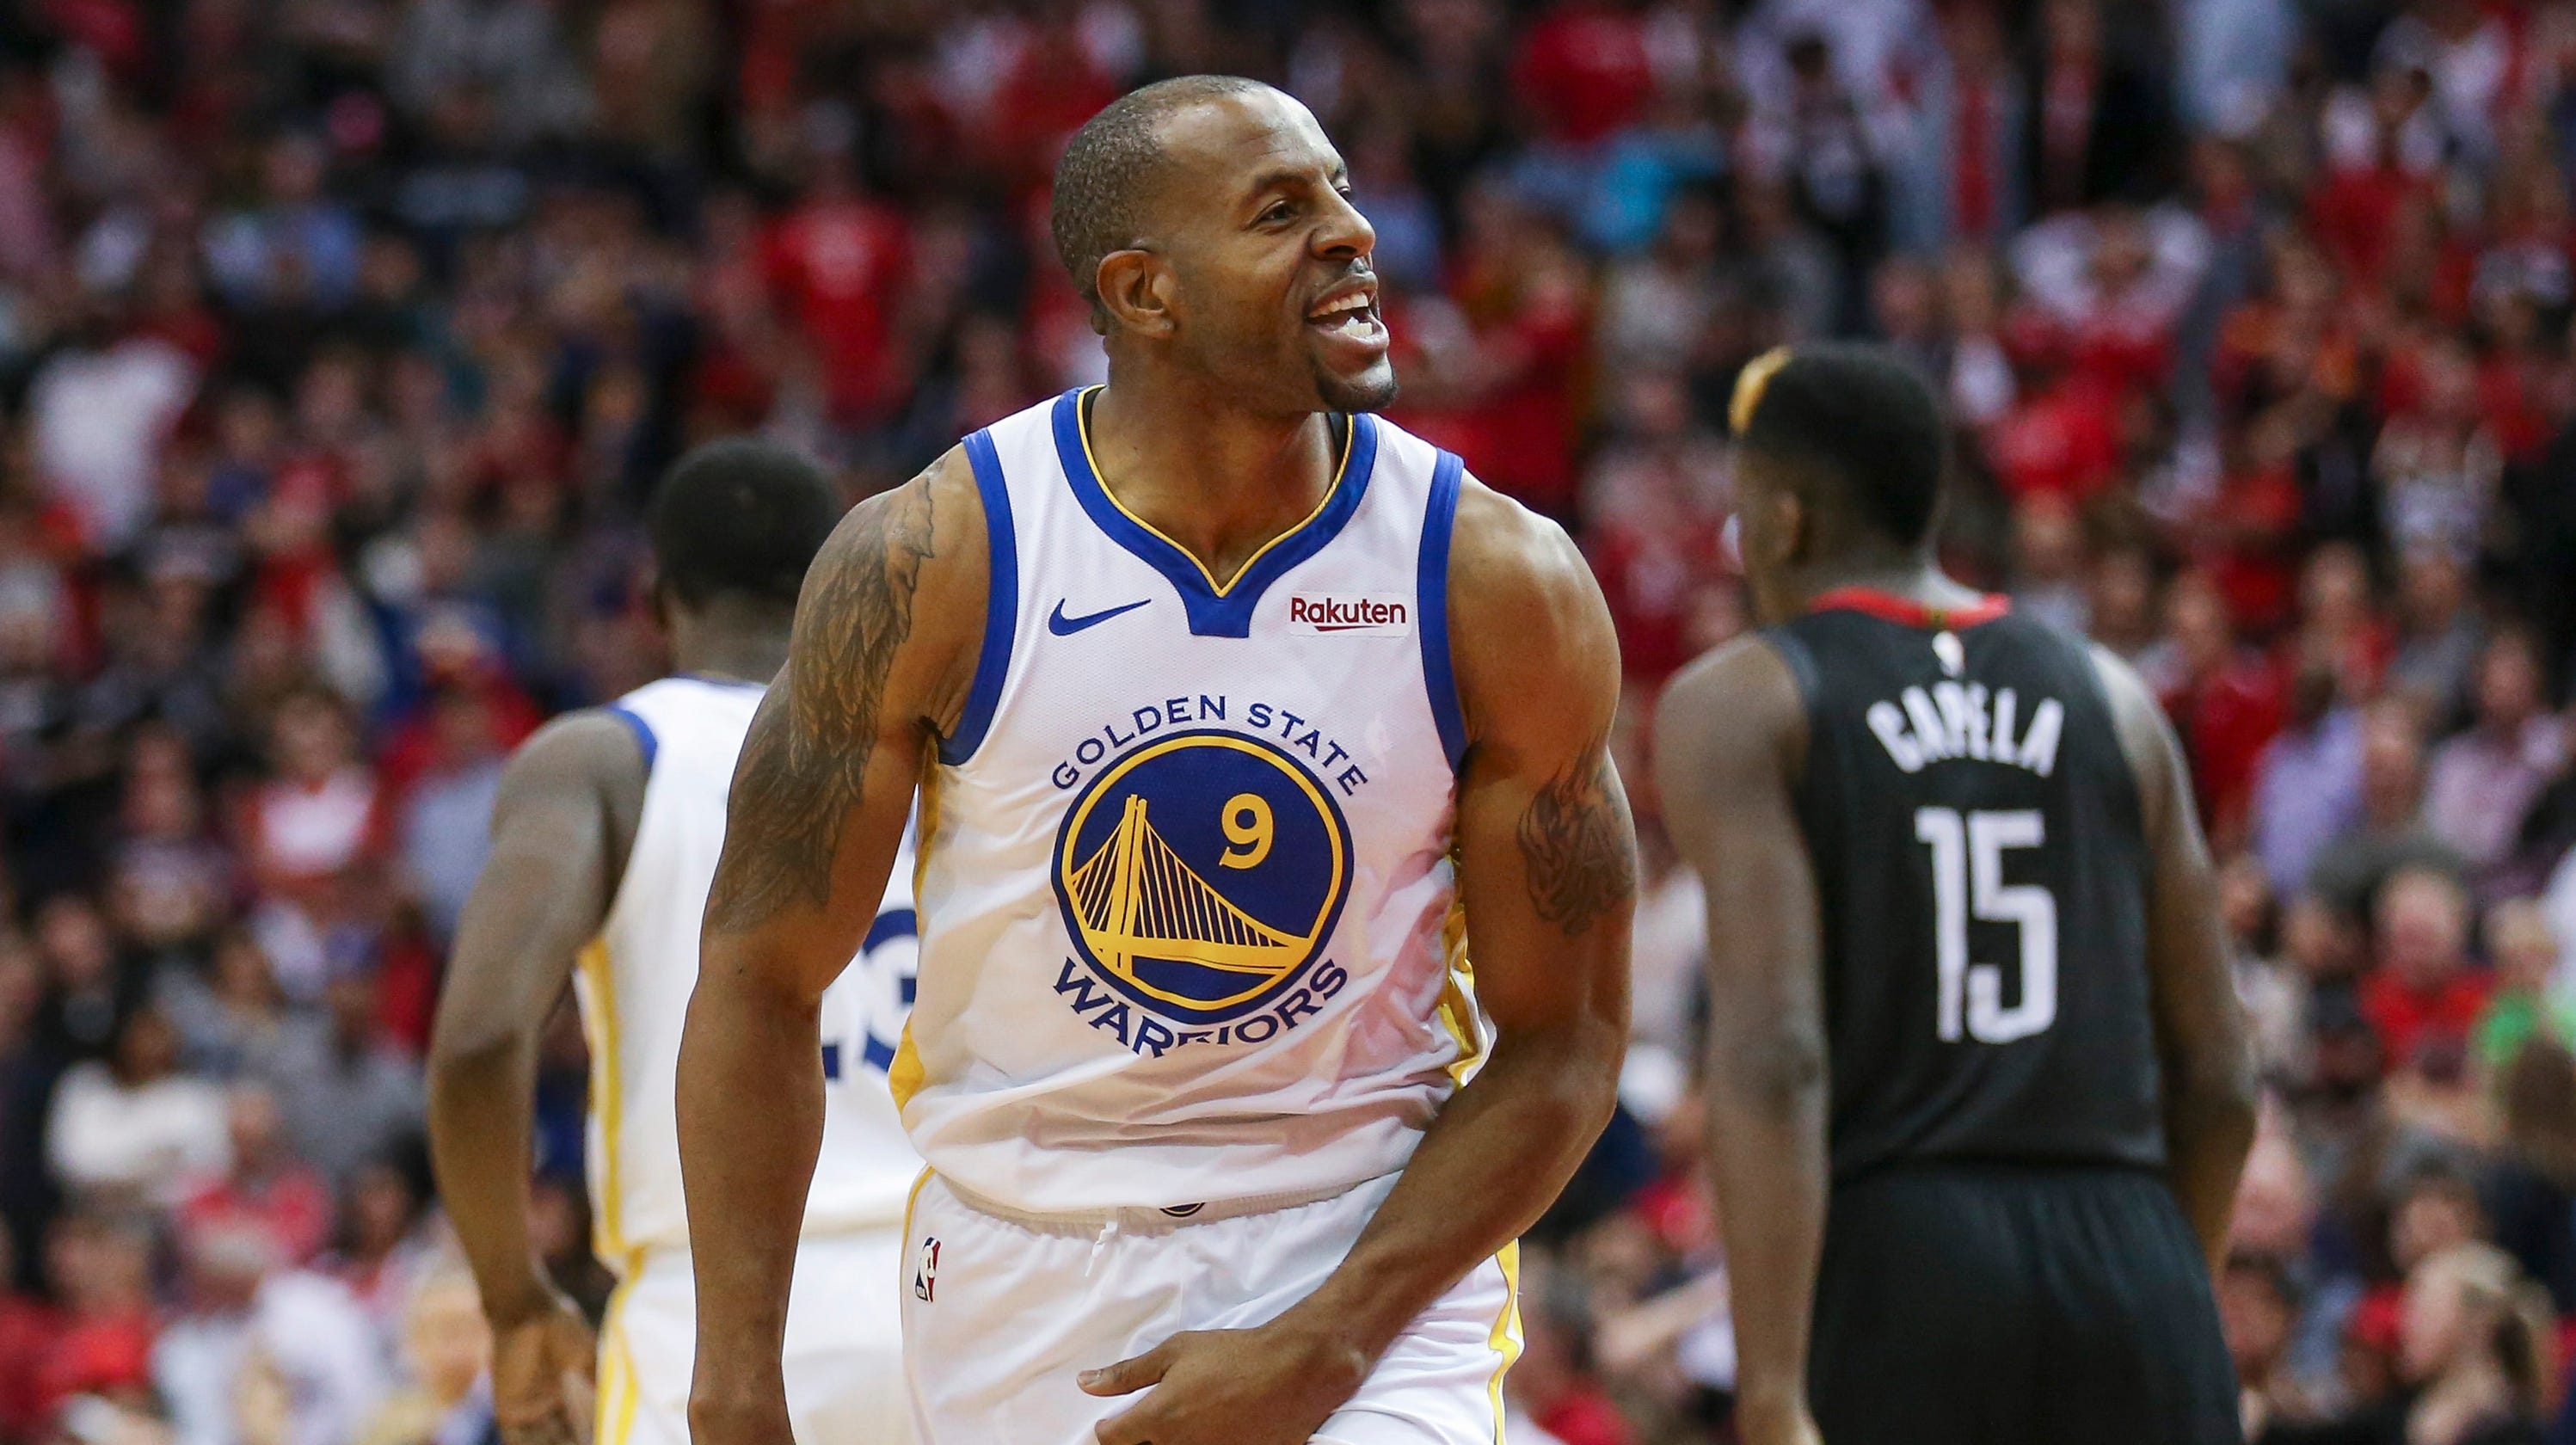 ab85a319baaa Warriors beat Rockets as DeMarcus Cousins goes for season high